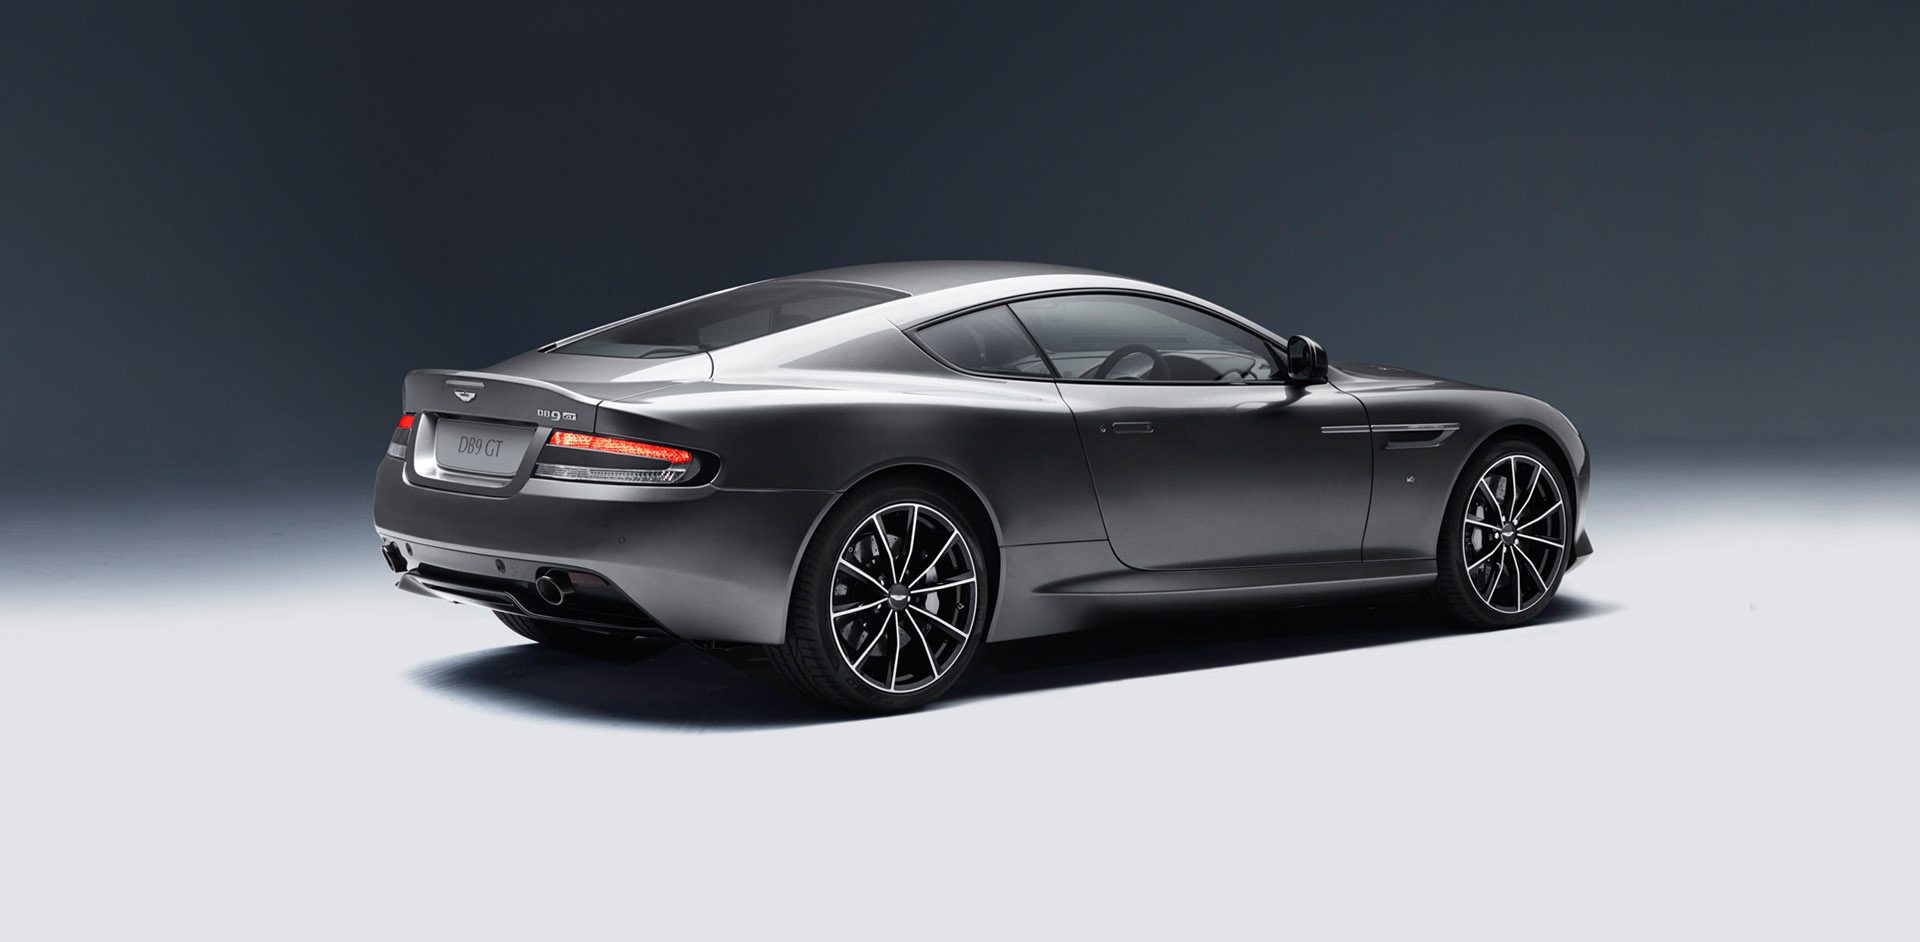 Aston Martin DB GT V Car Aston Martin DB GT Car - 2018 aston martin db9